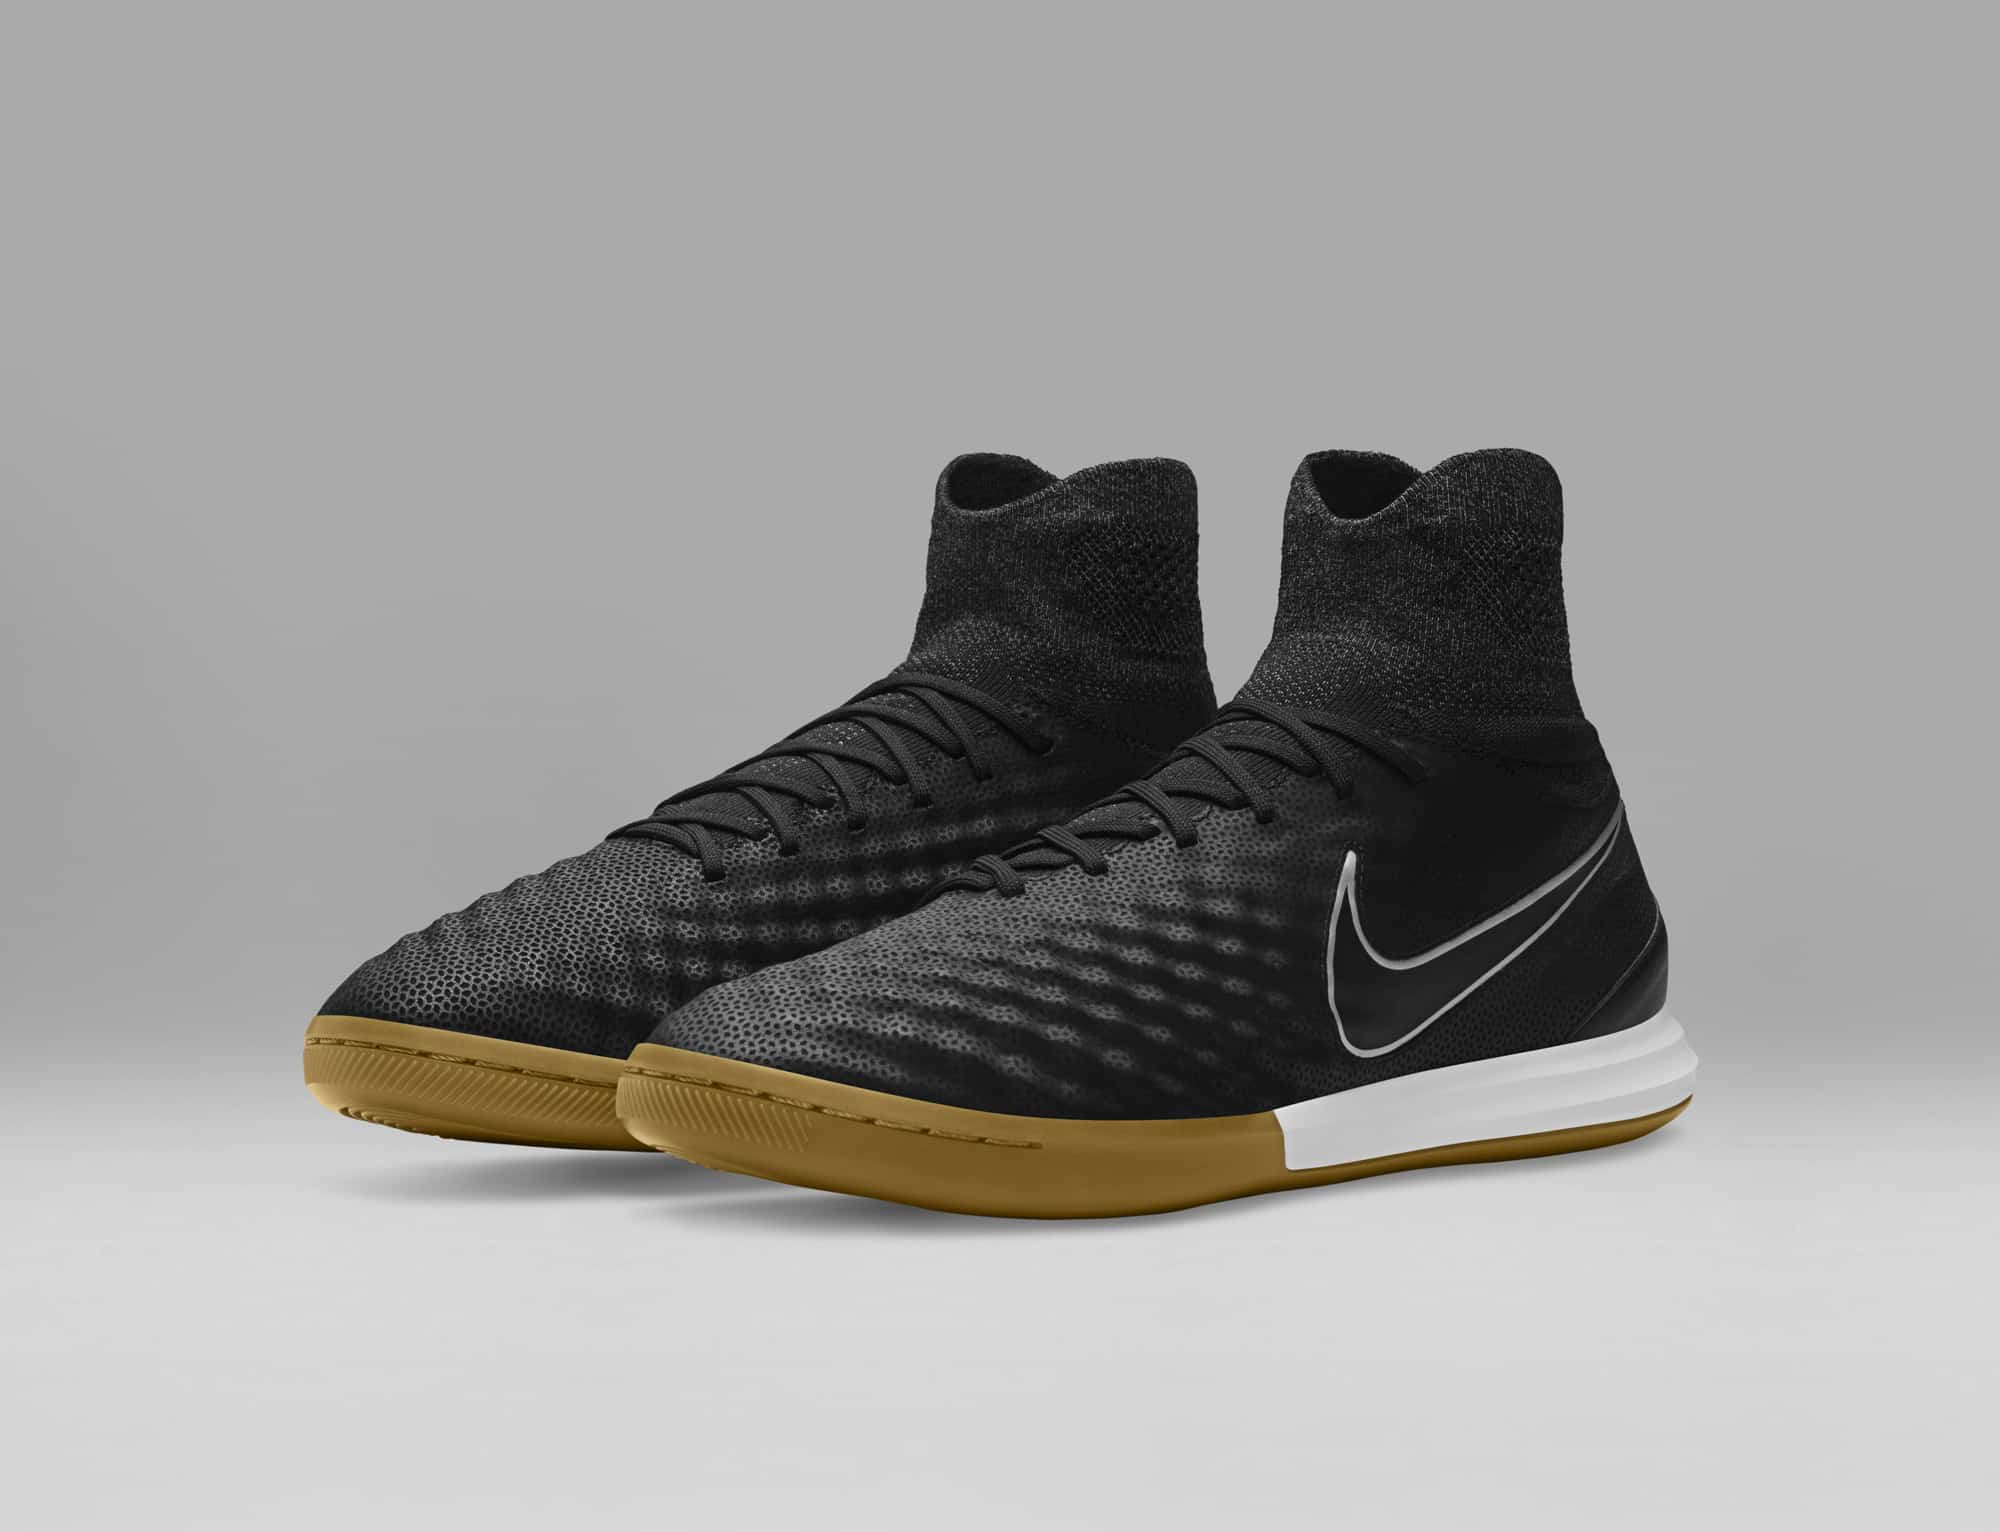 chaussures-football-nike-magistax-proximo-2-tech-craft-img1